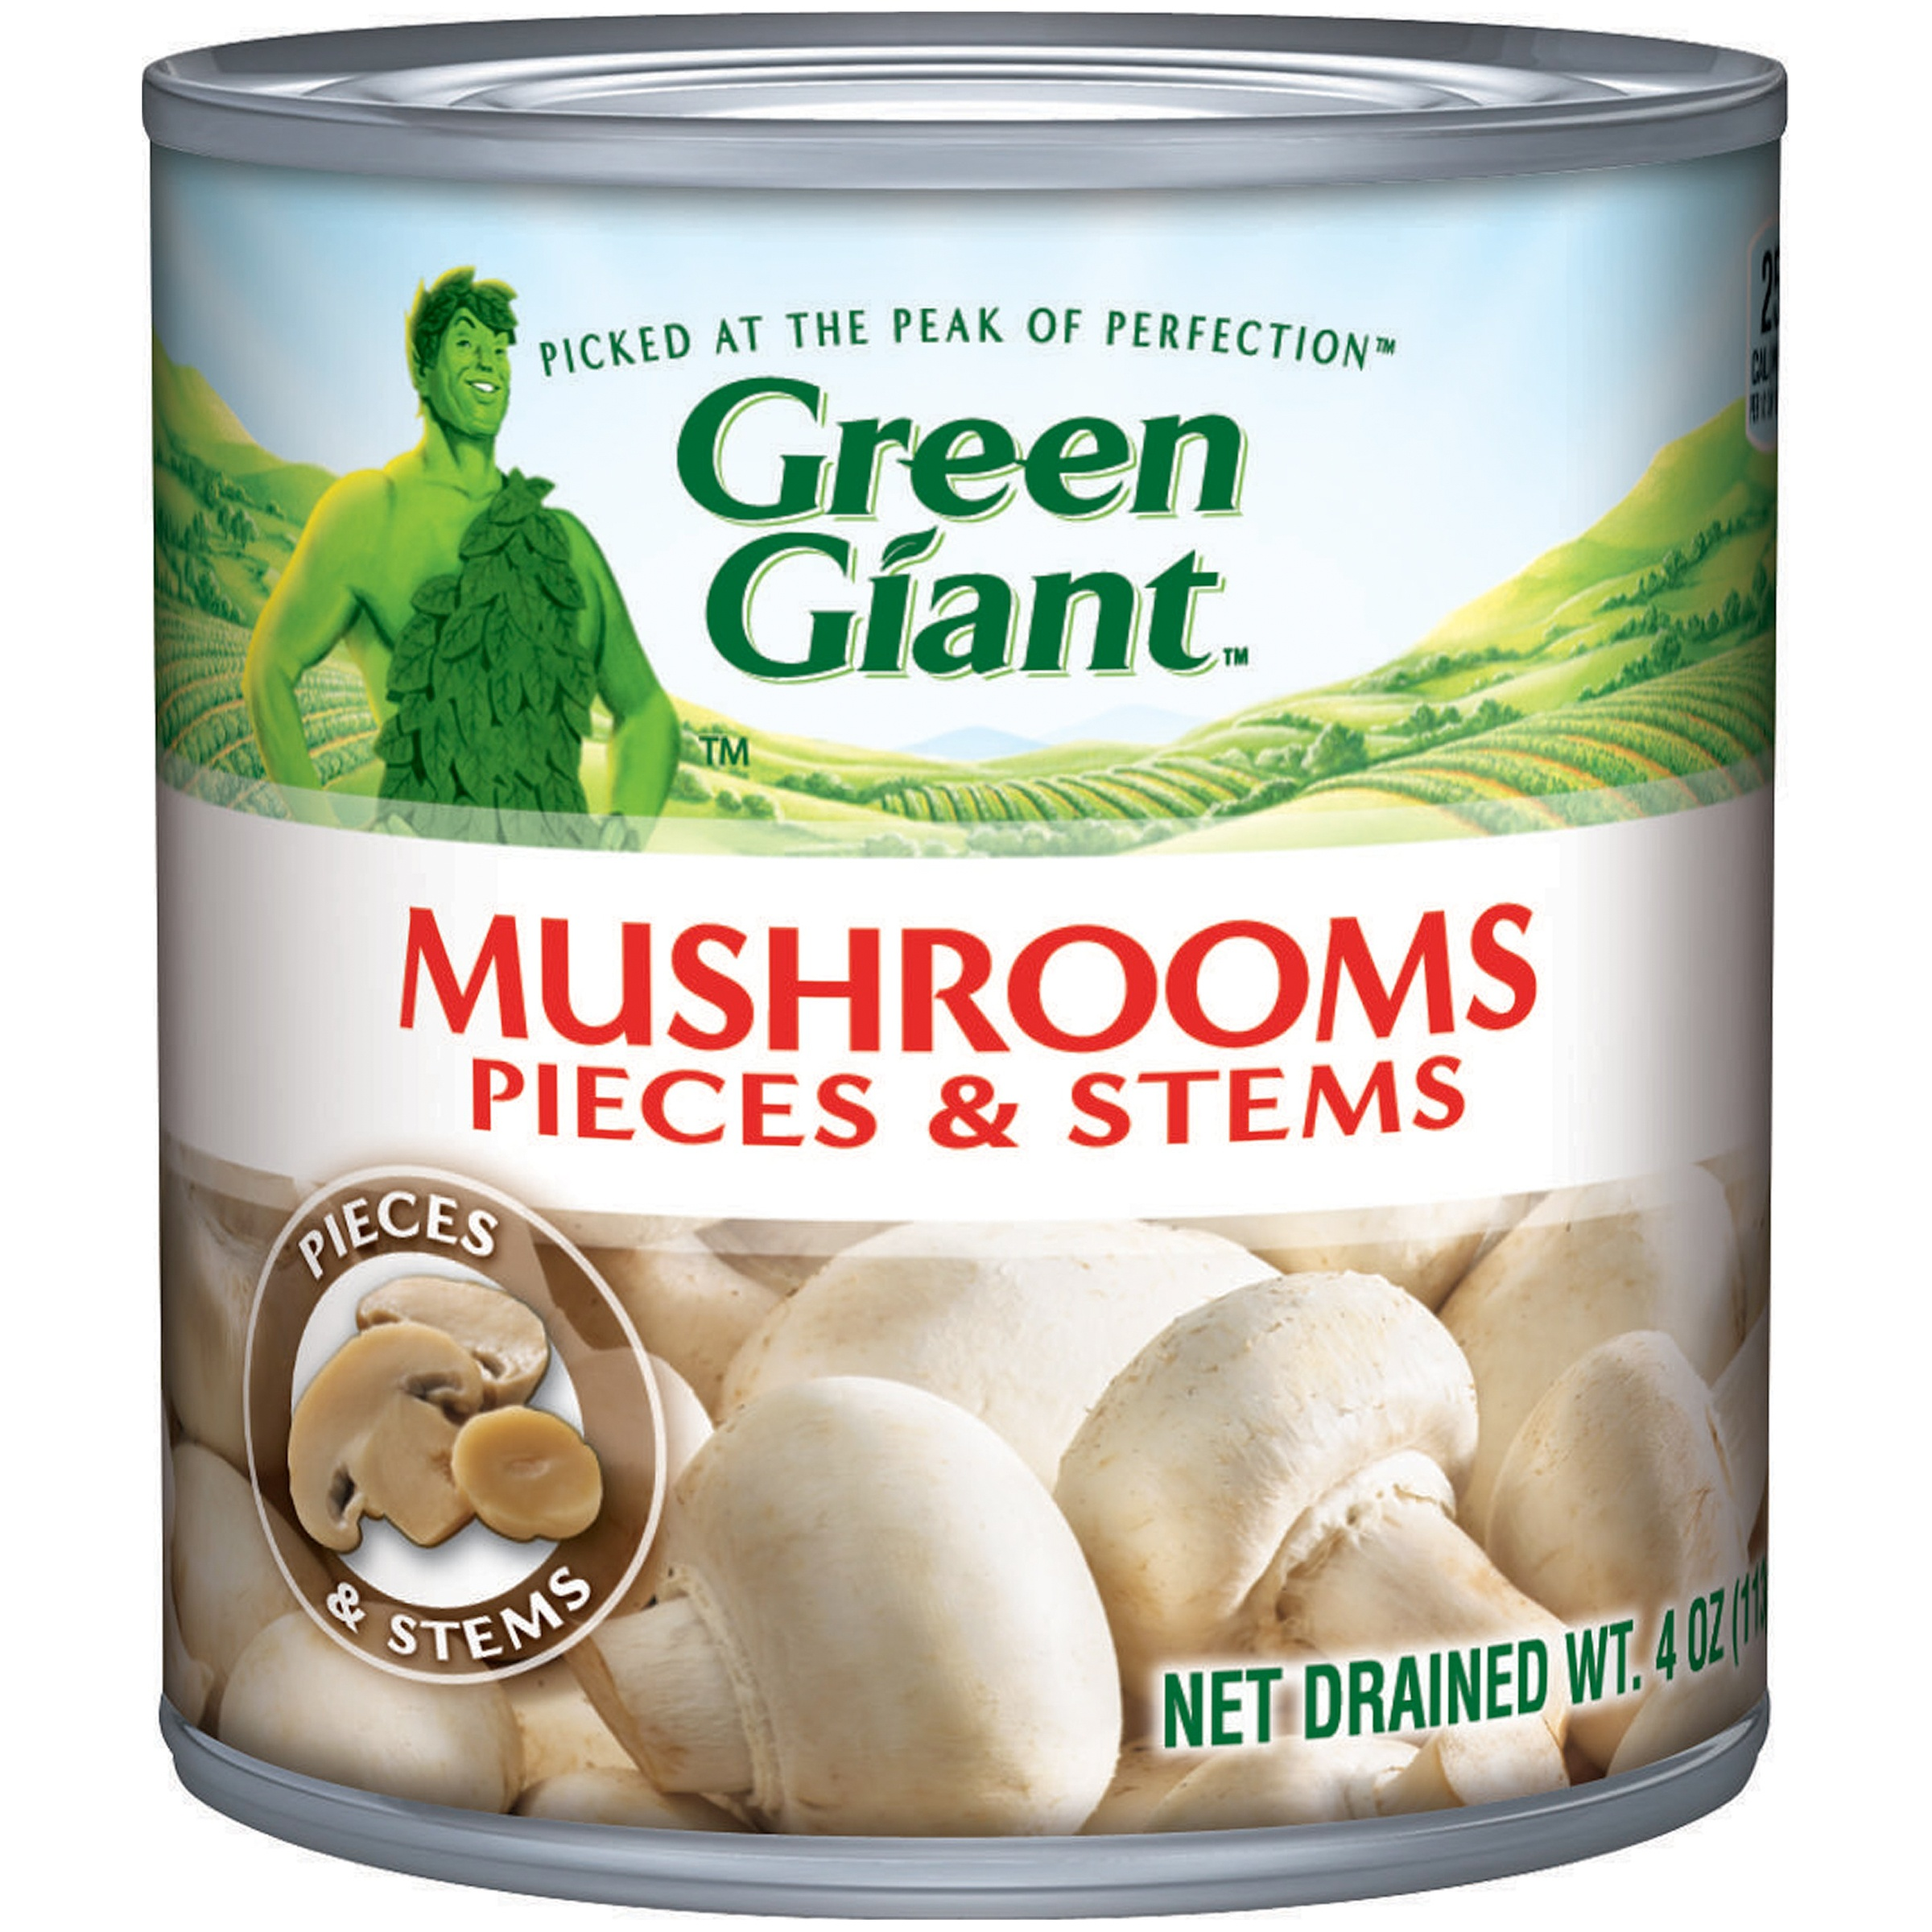 Green Giant Mushroom Pieces & Stems 4 oz. Can by GENERAL MILLS SALES, INC.